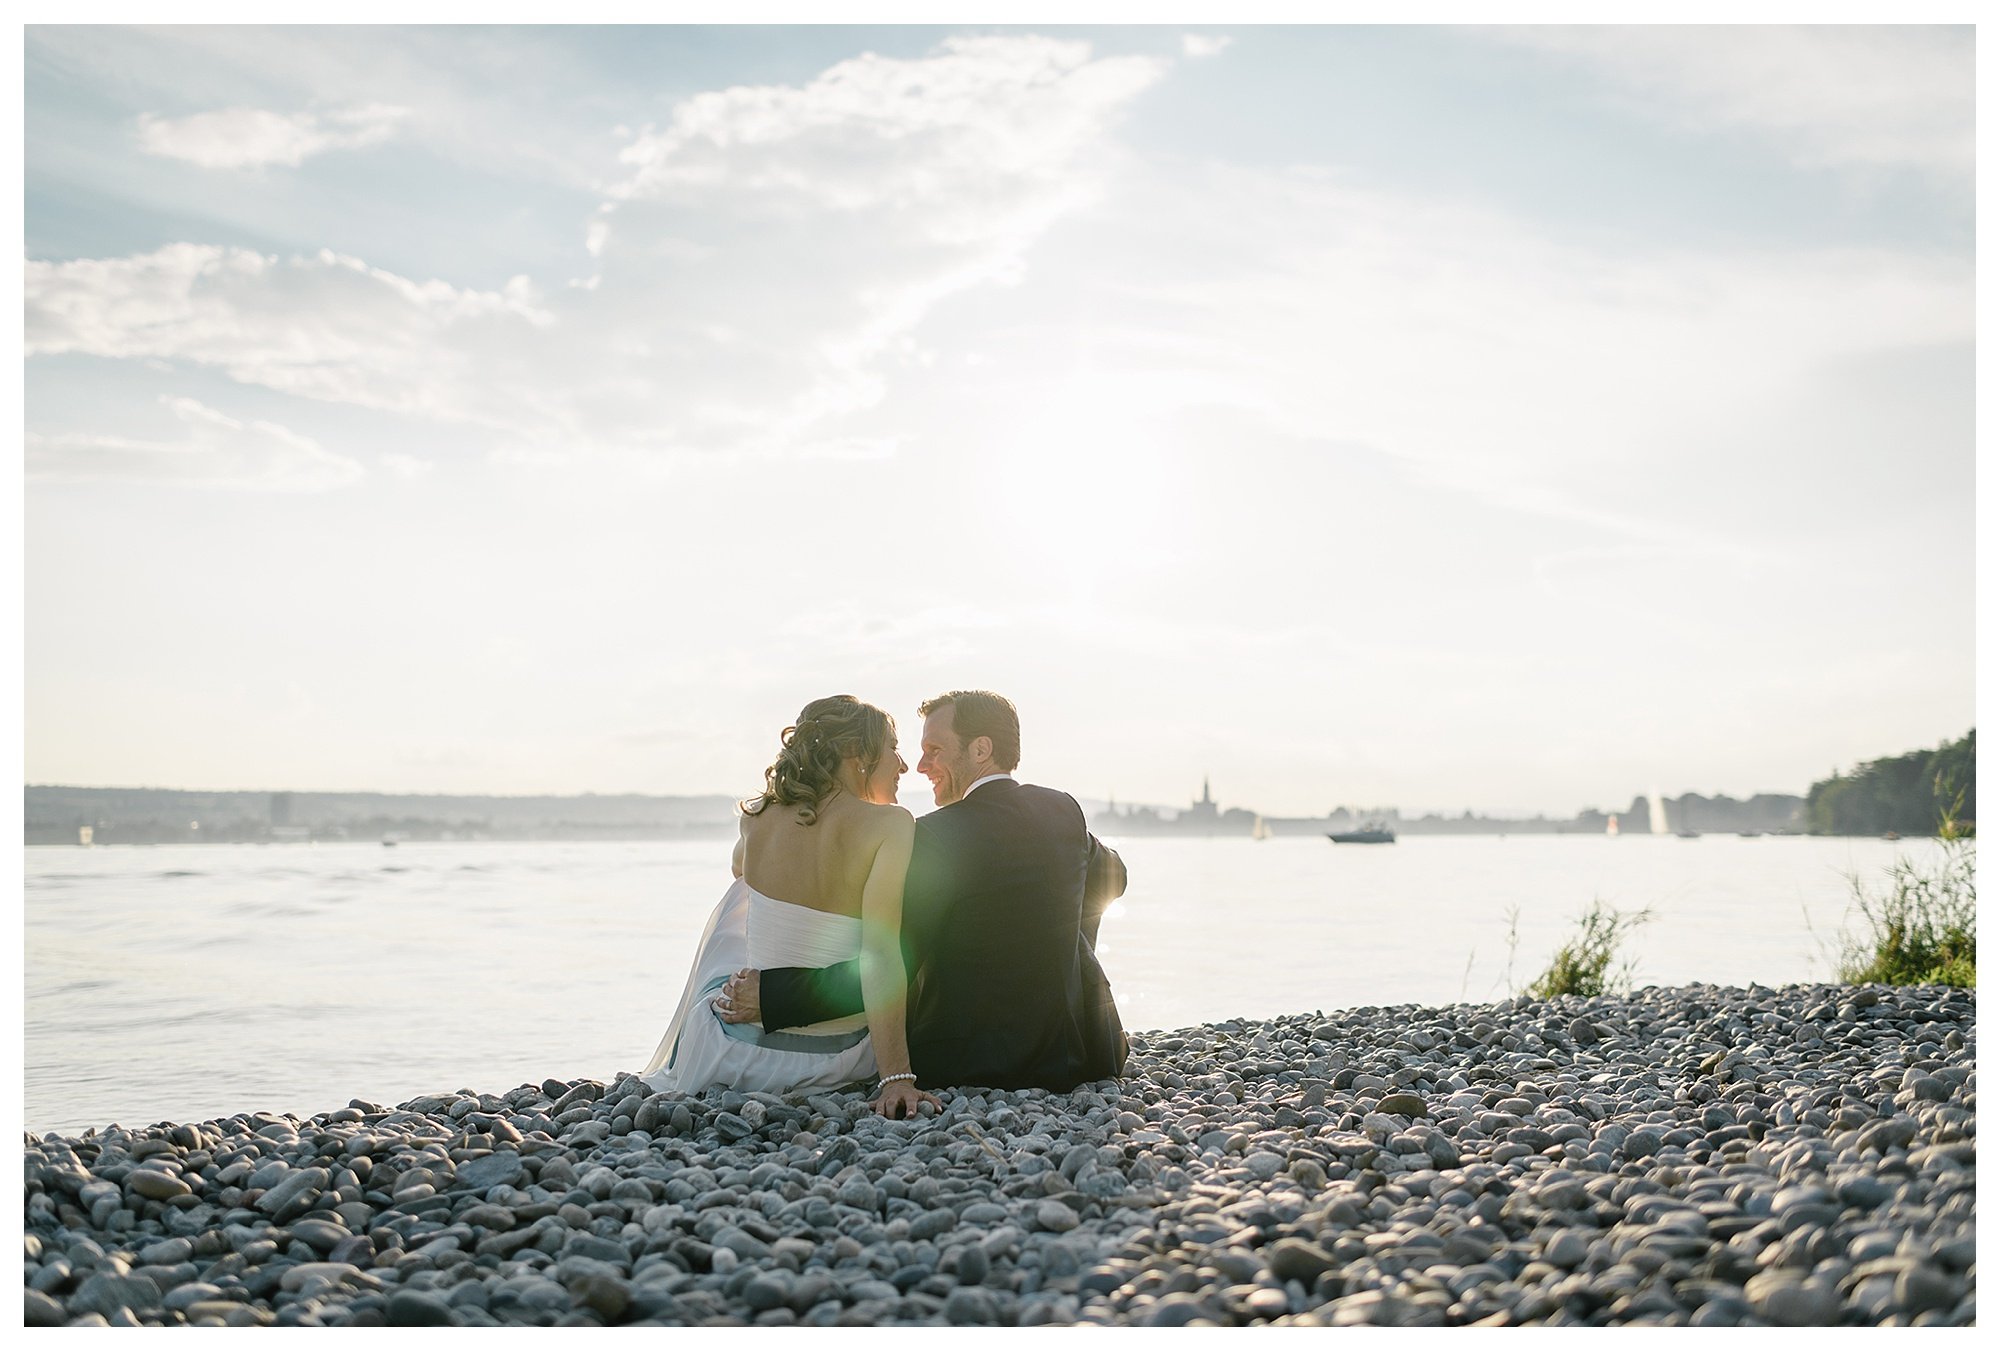 Fotograf Konstanz - Hochzeitsreportage Konstanz Raphael Nicole Elmar Feuerbacher Photography Hochzeit Portrait 51 - Wedding in Constance at Lake of Constance  - 70 -